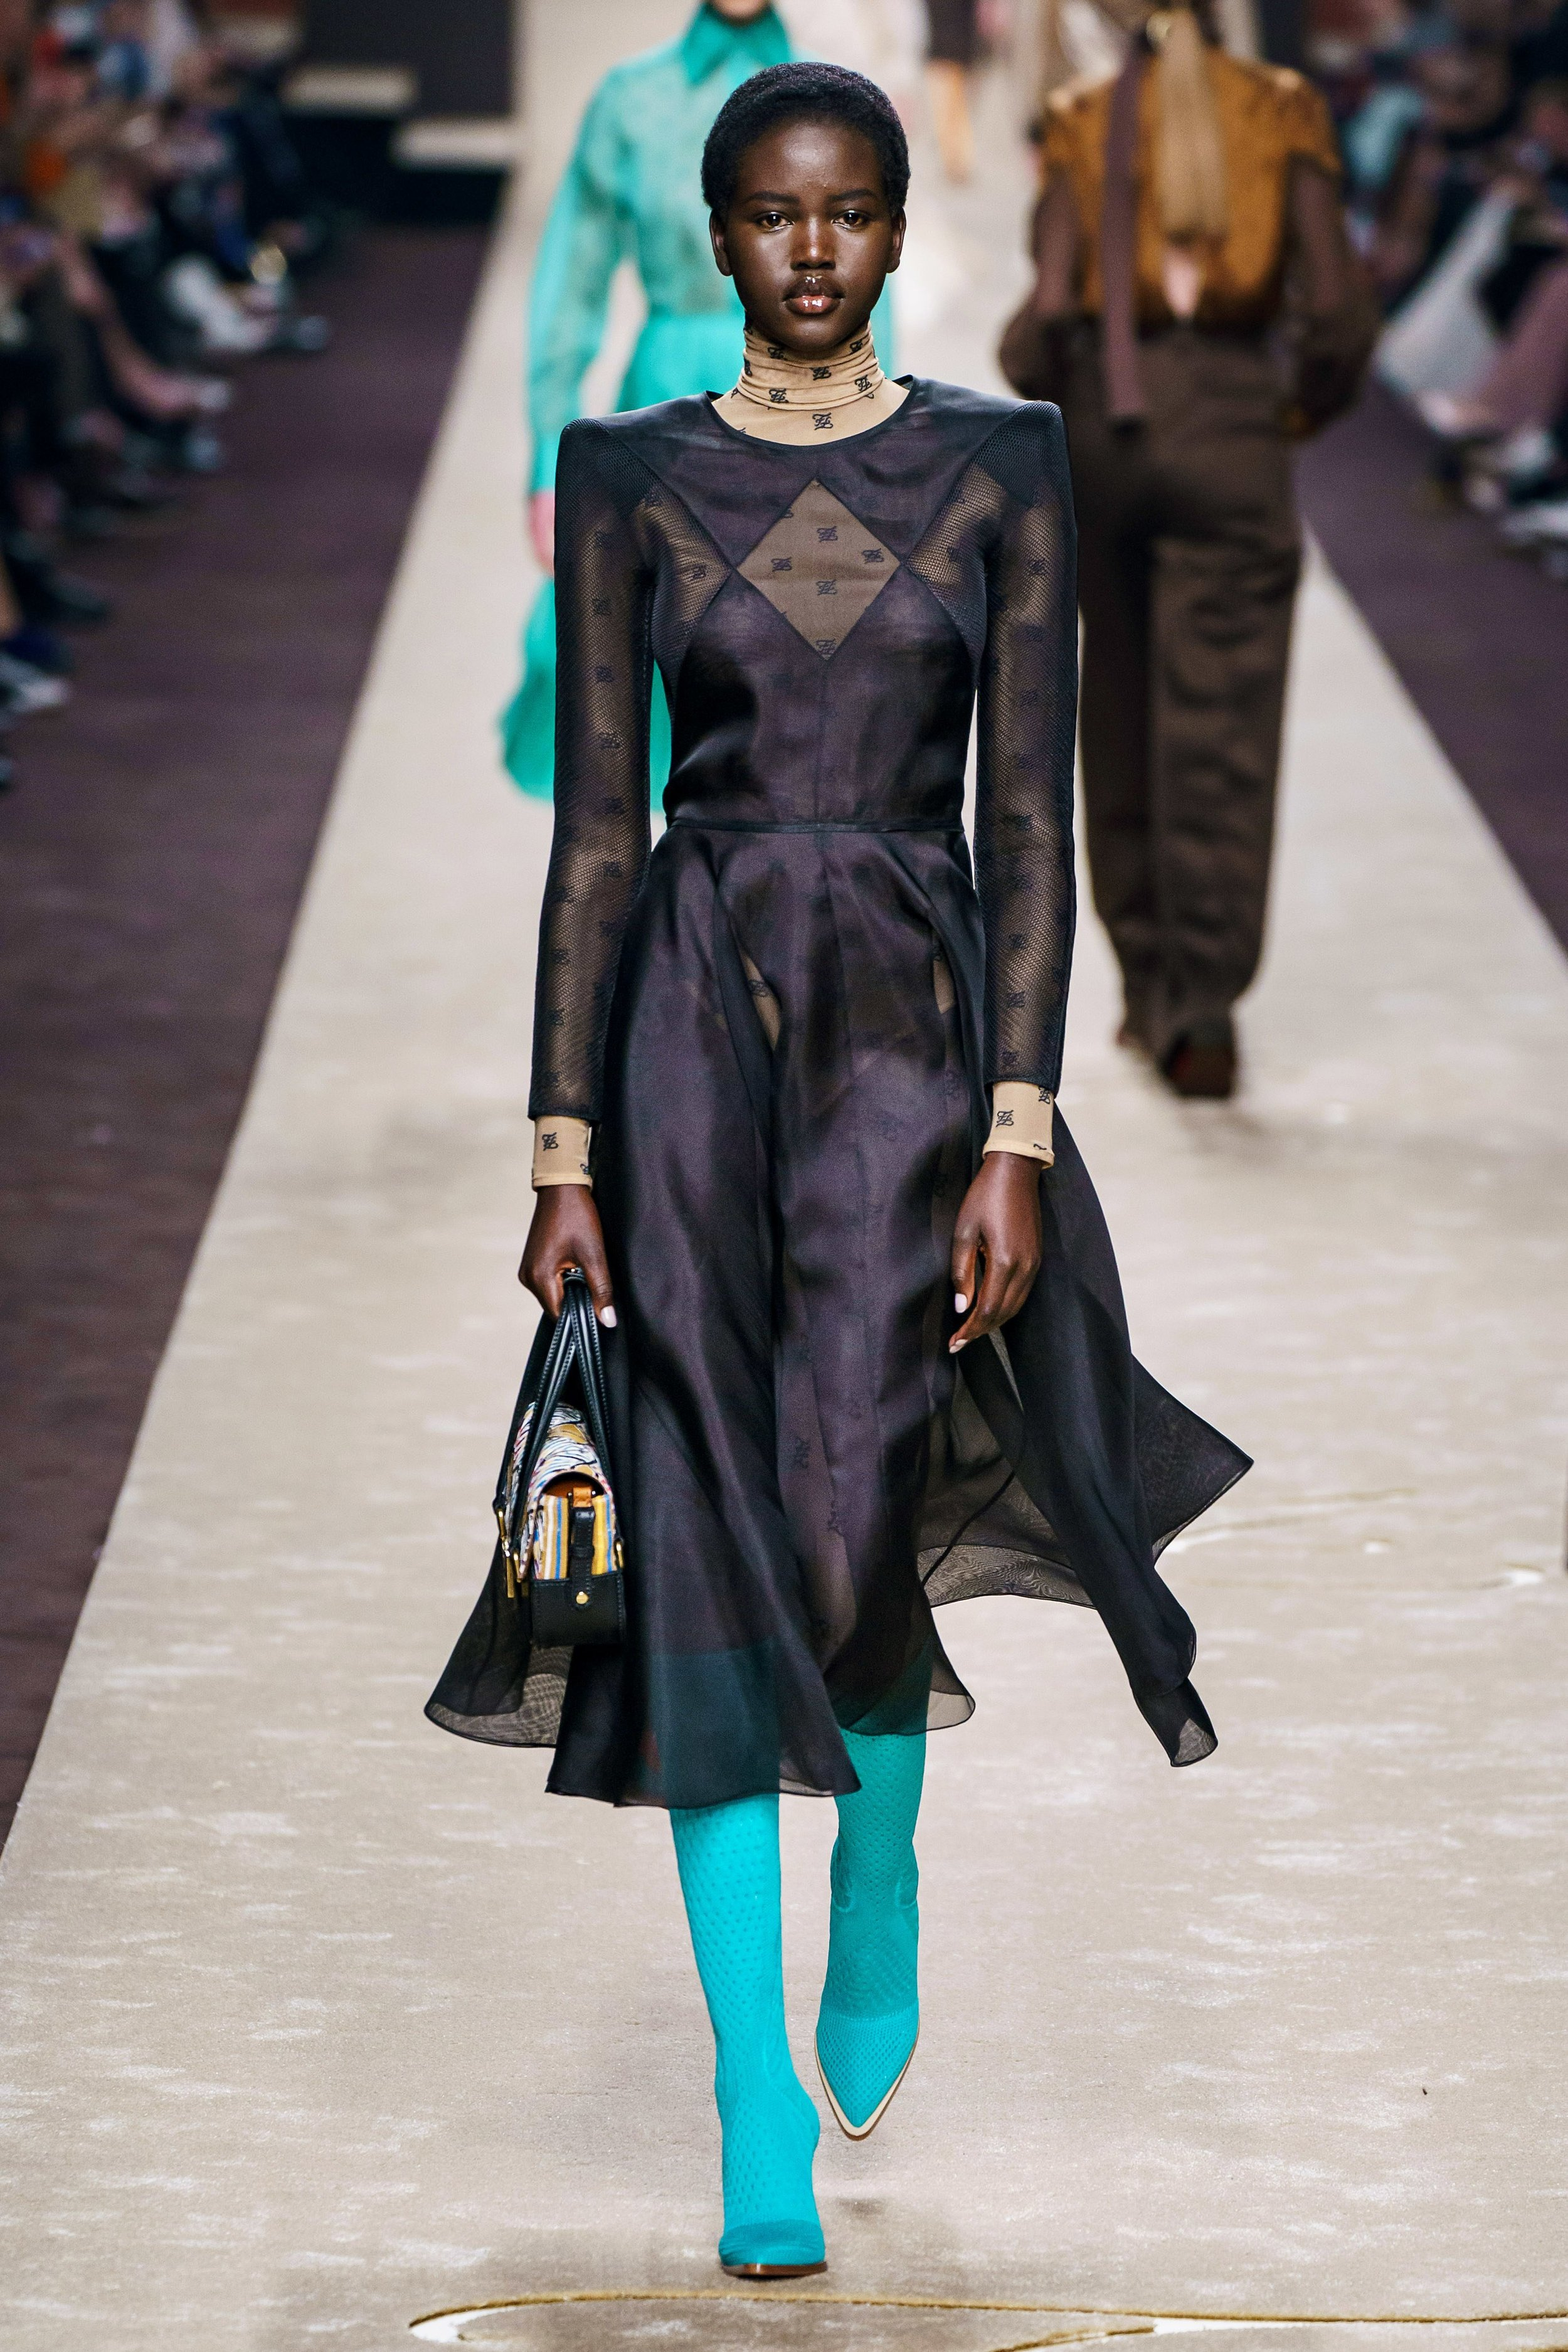 FENDI mourns - It has to be said;Karl Largerfeld's impression left upon the Italian house of Fendi is certainly impressing.